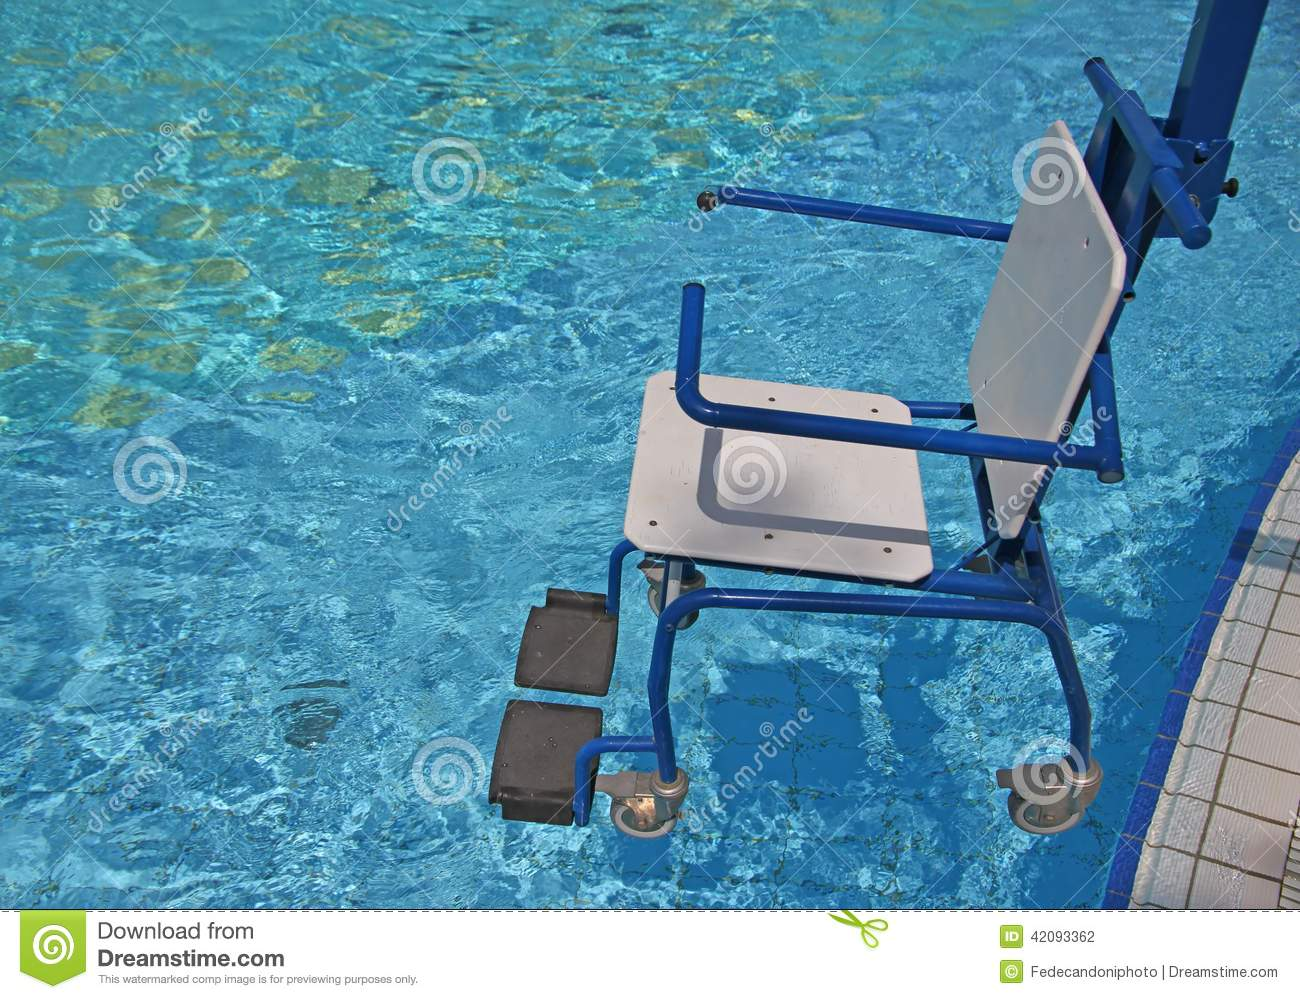 Sedia a rotelle per il disabile per la piscina 2 for Handicappato sedia a rotelle